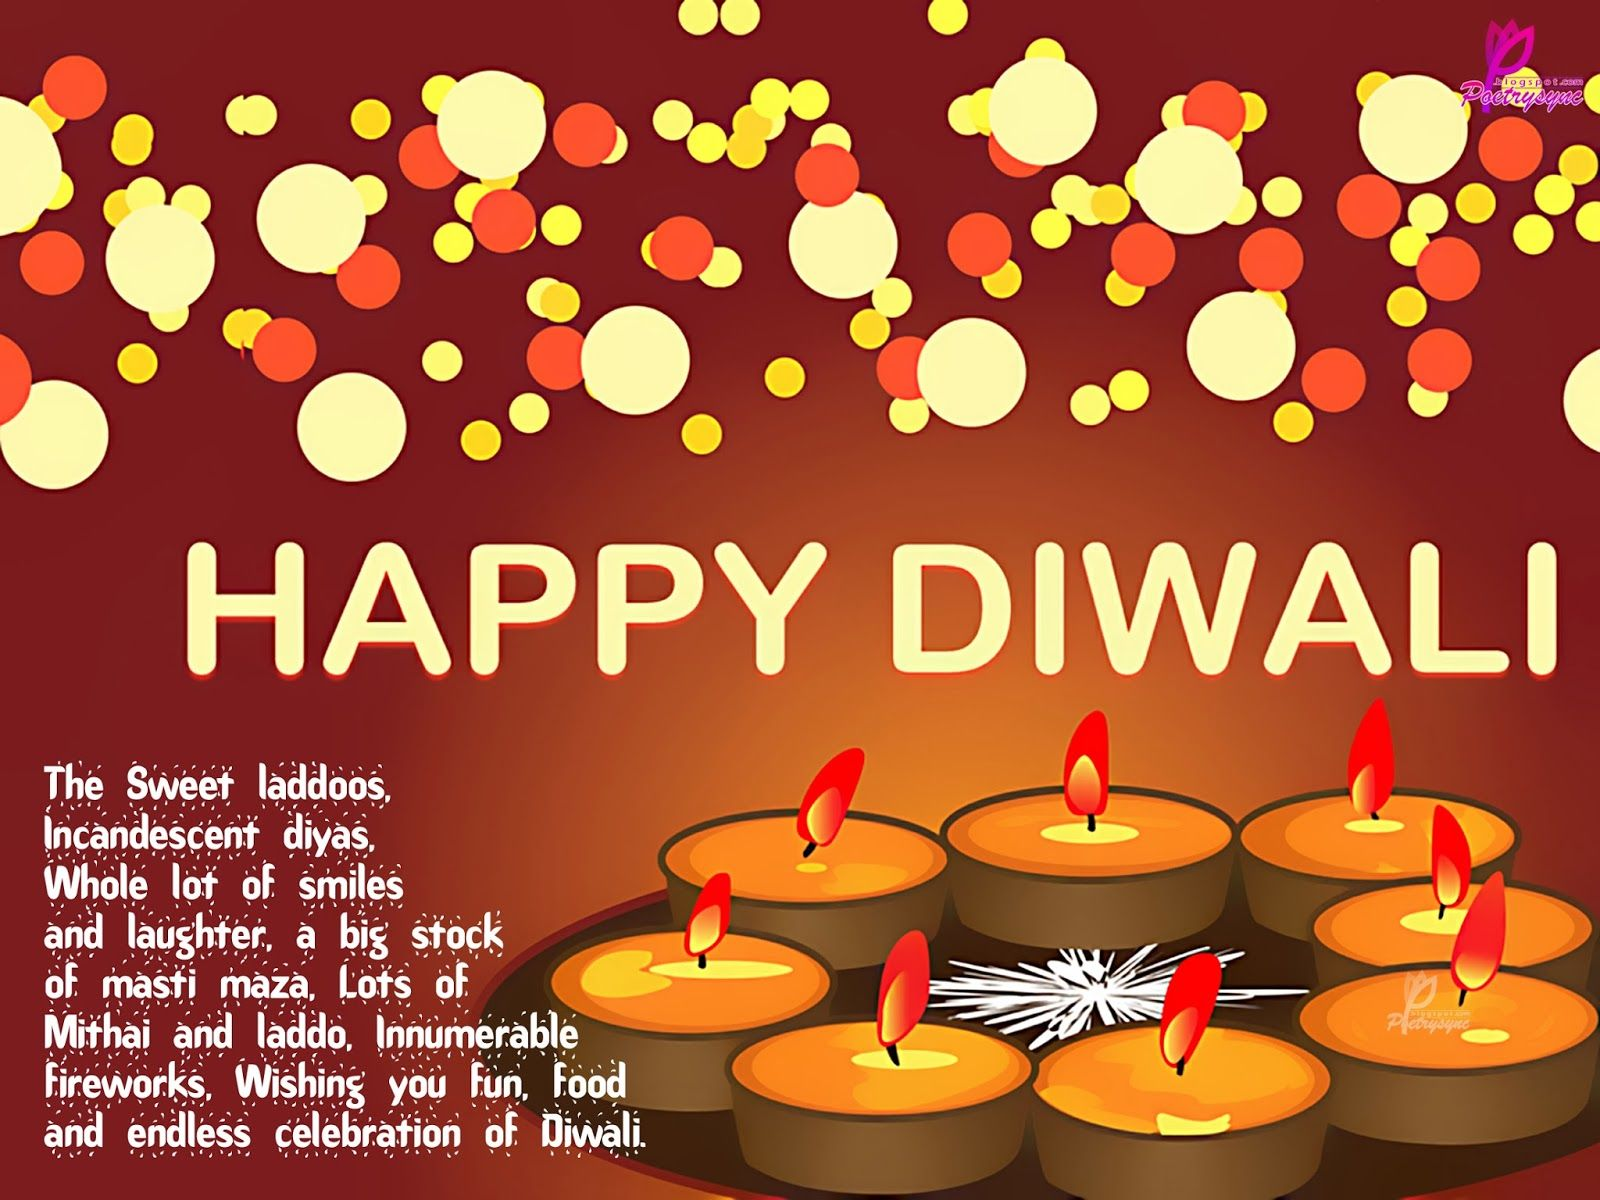 Happy diwali sms photos and greeting cards diwali greetings sms happy diwali sms photos and greeting cards diwali greetings sms messages diwali gifts and images free happy diwali hd wallpapers for desktop kristyandbryce Gallery